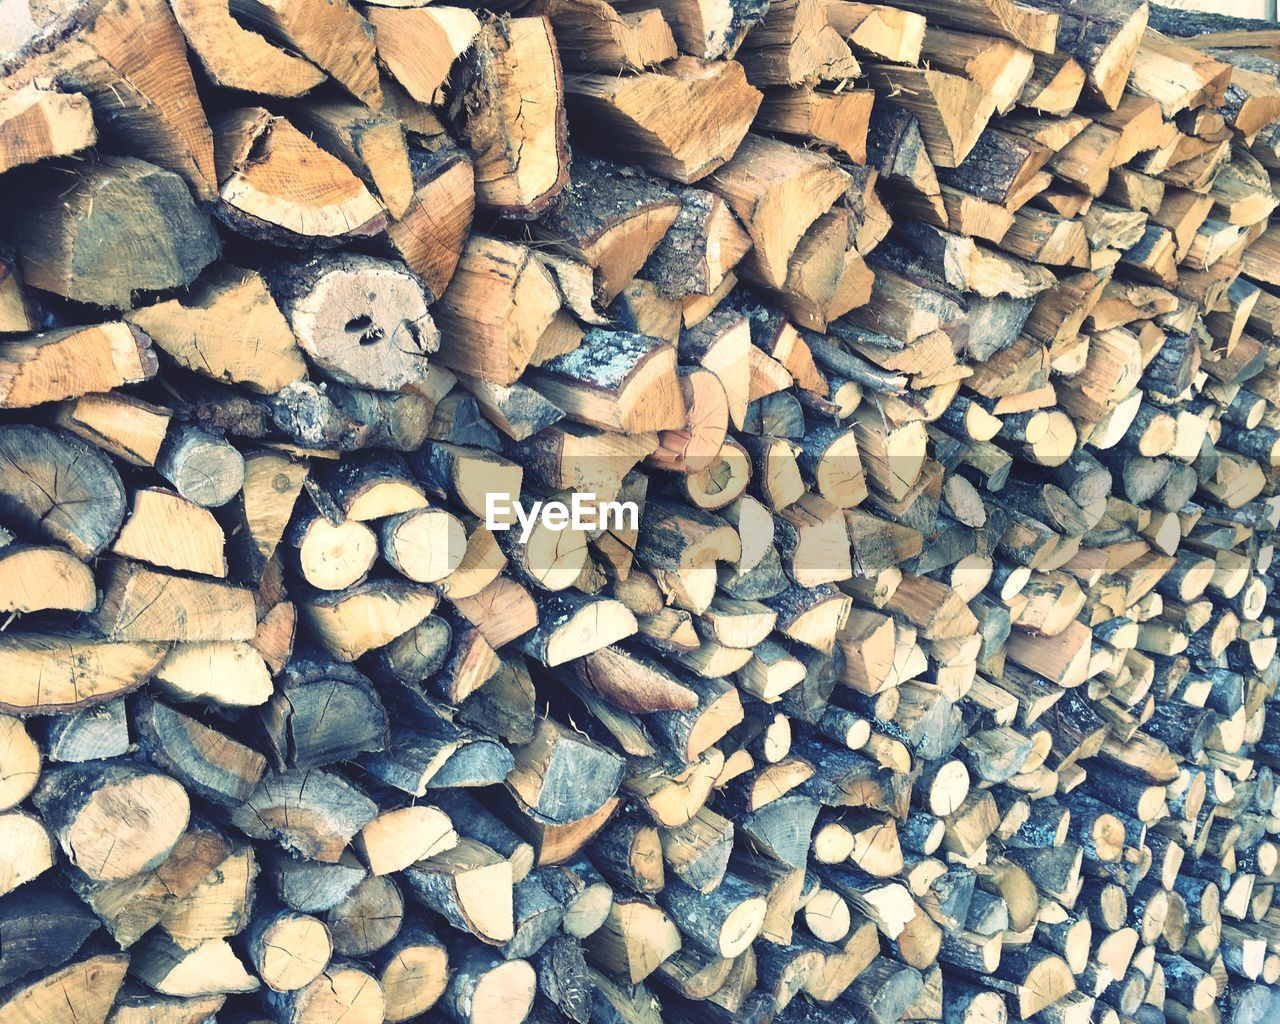 firewood, stack, woodpile, log, timber, abundance, large group of objects, forestry industry, heap, lumber industry, deforestation, backgrounds, fossil fuel, full frame, wood - material, textured, pile, fuel and power generation, no people, day, close-up, outdoors